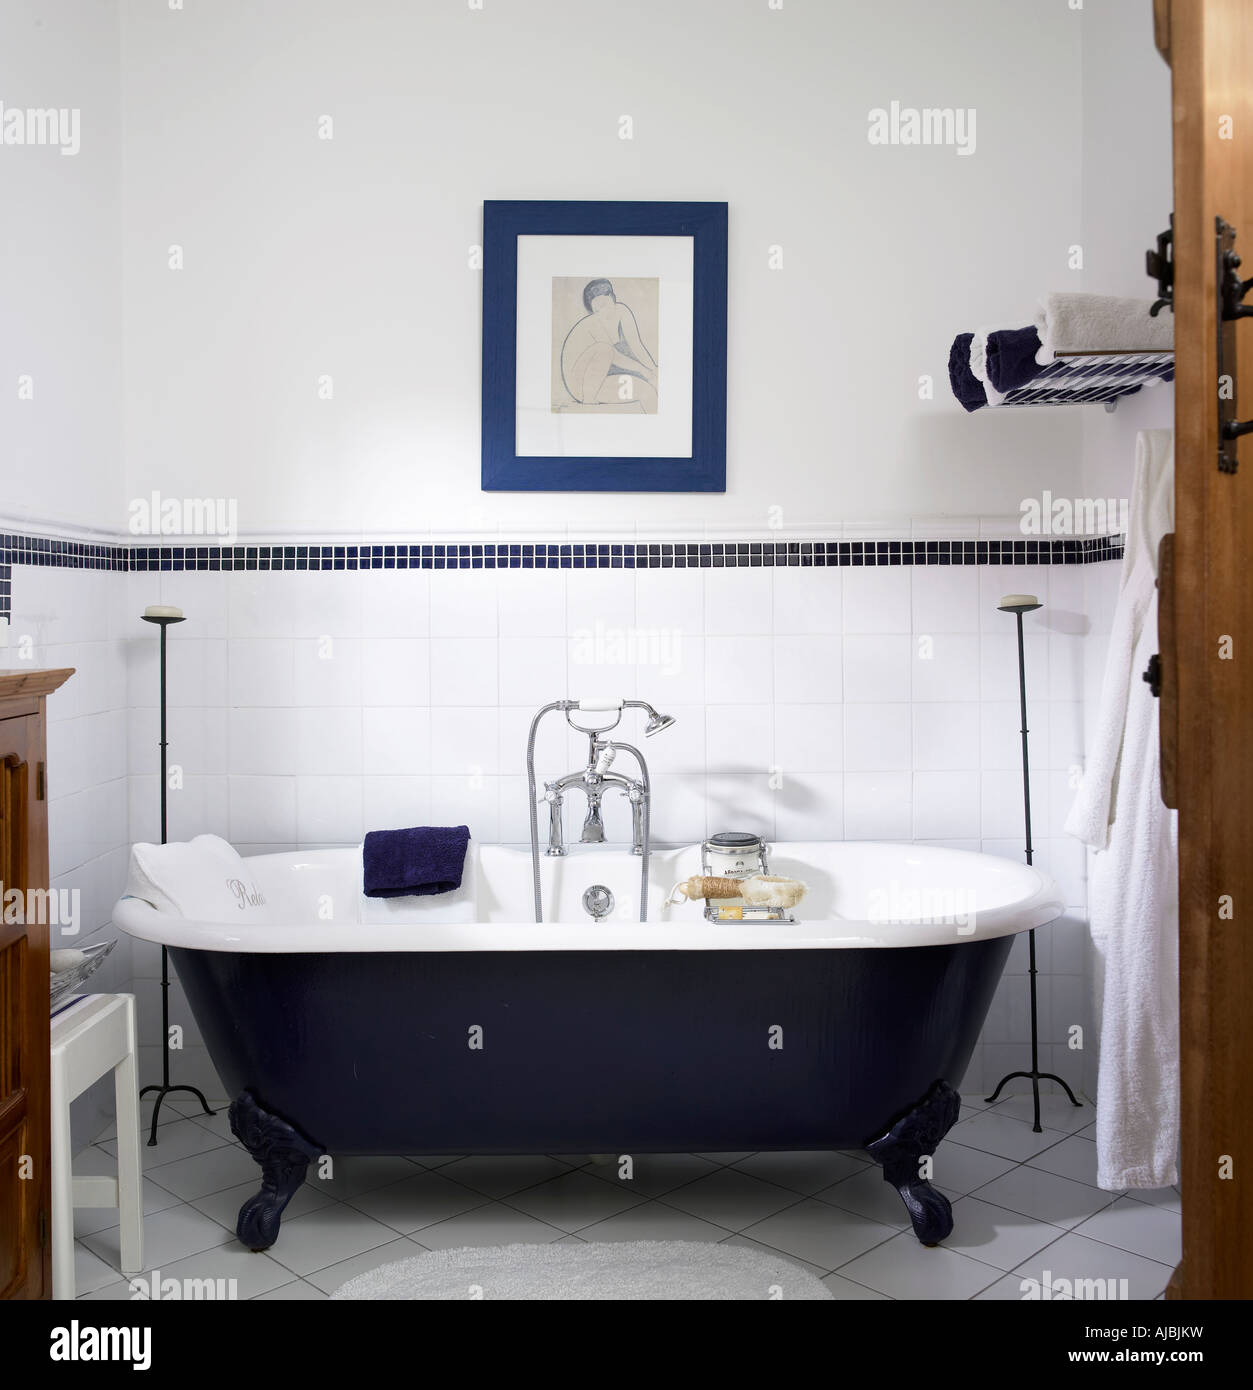 Bathroom with blue bath - Stock Image